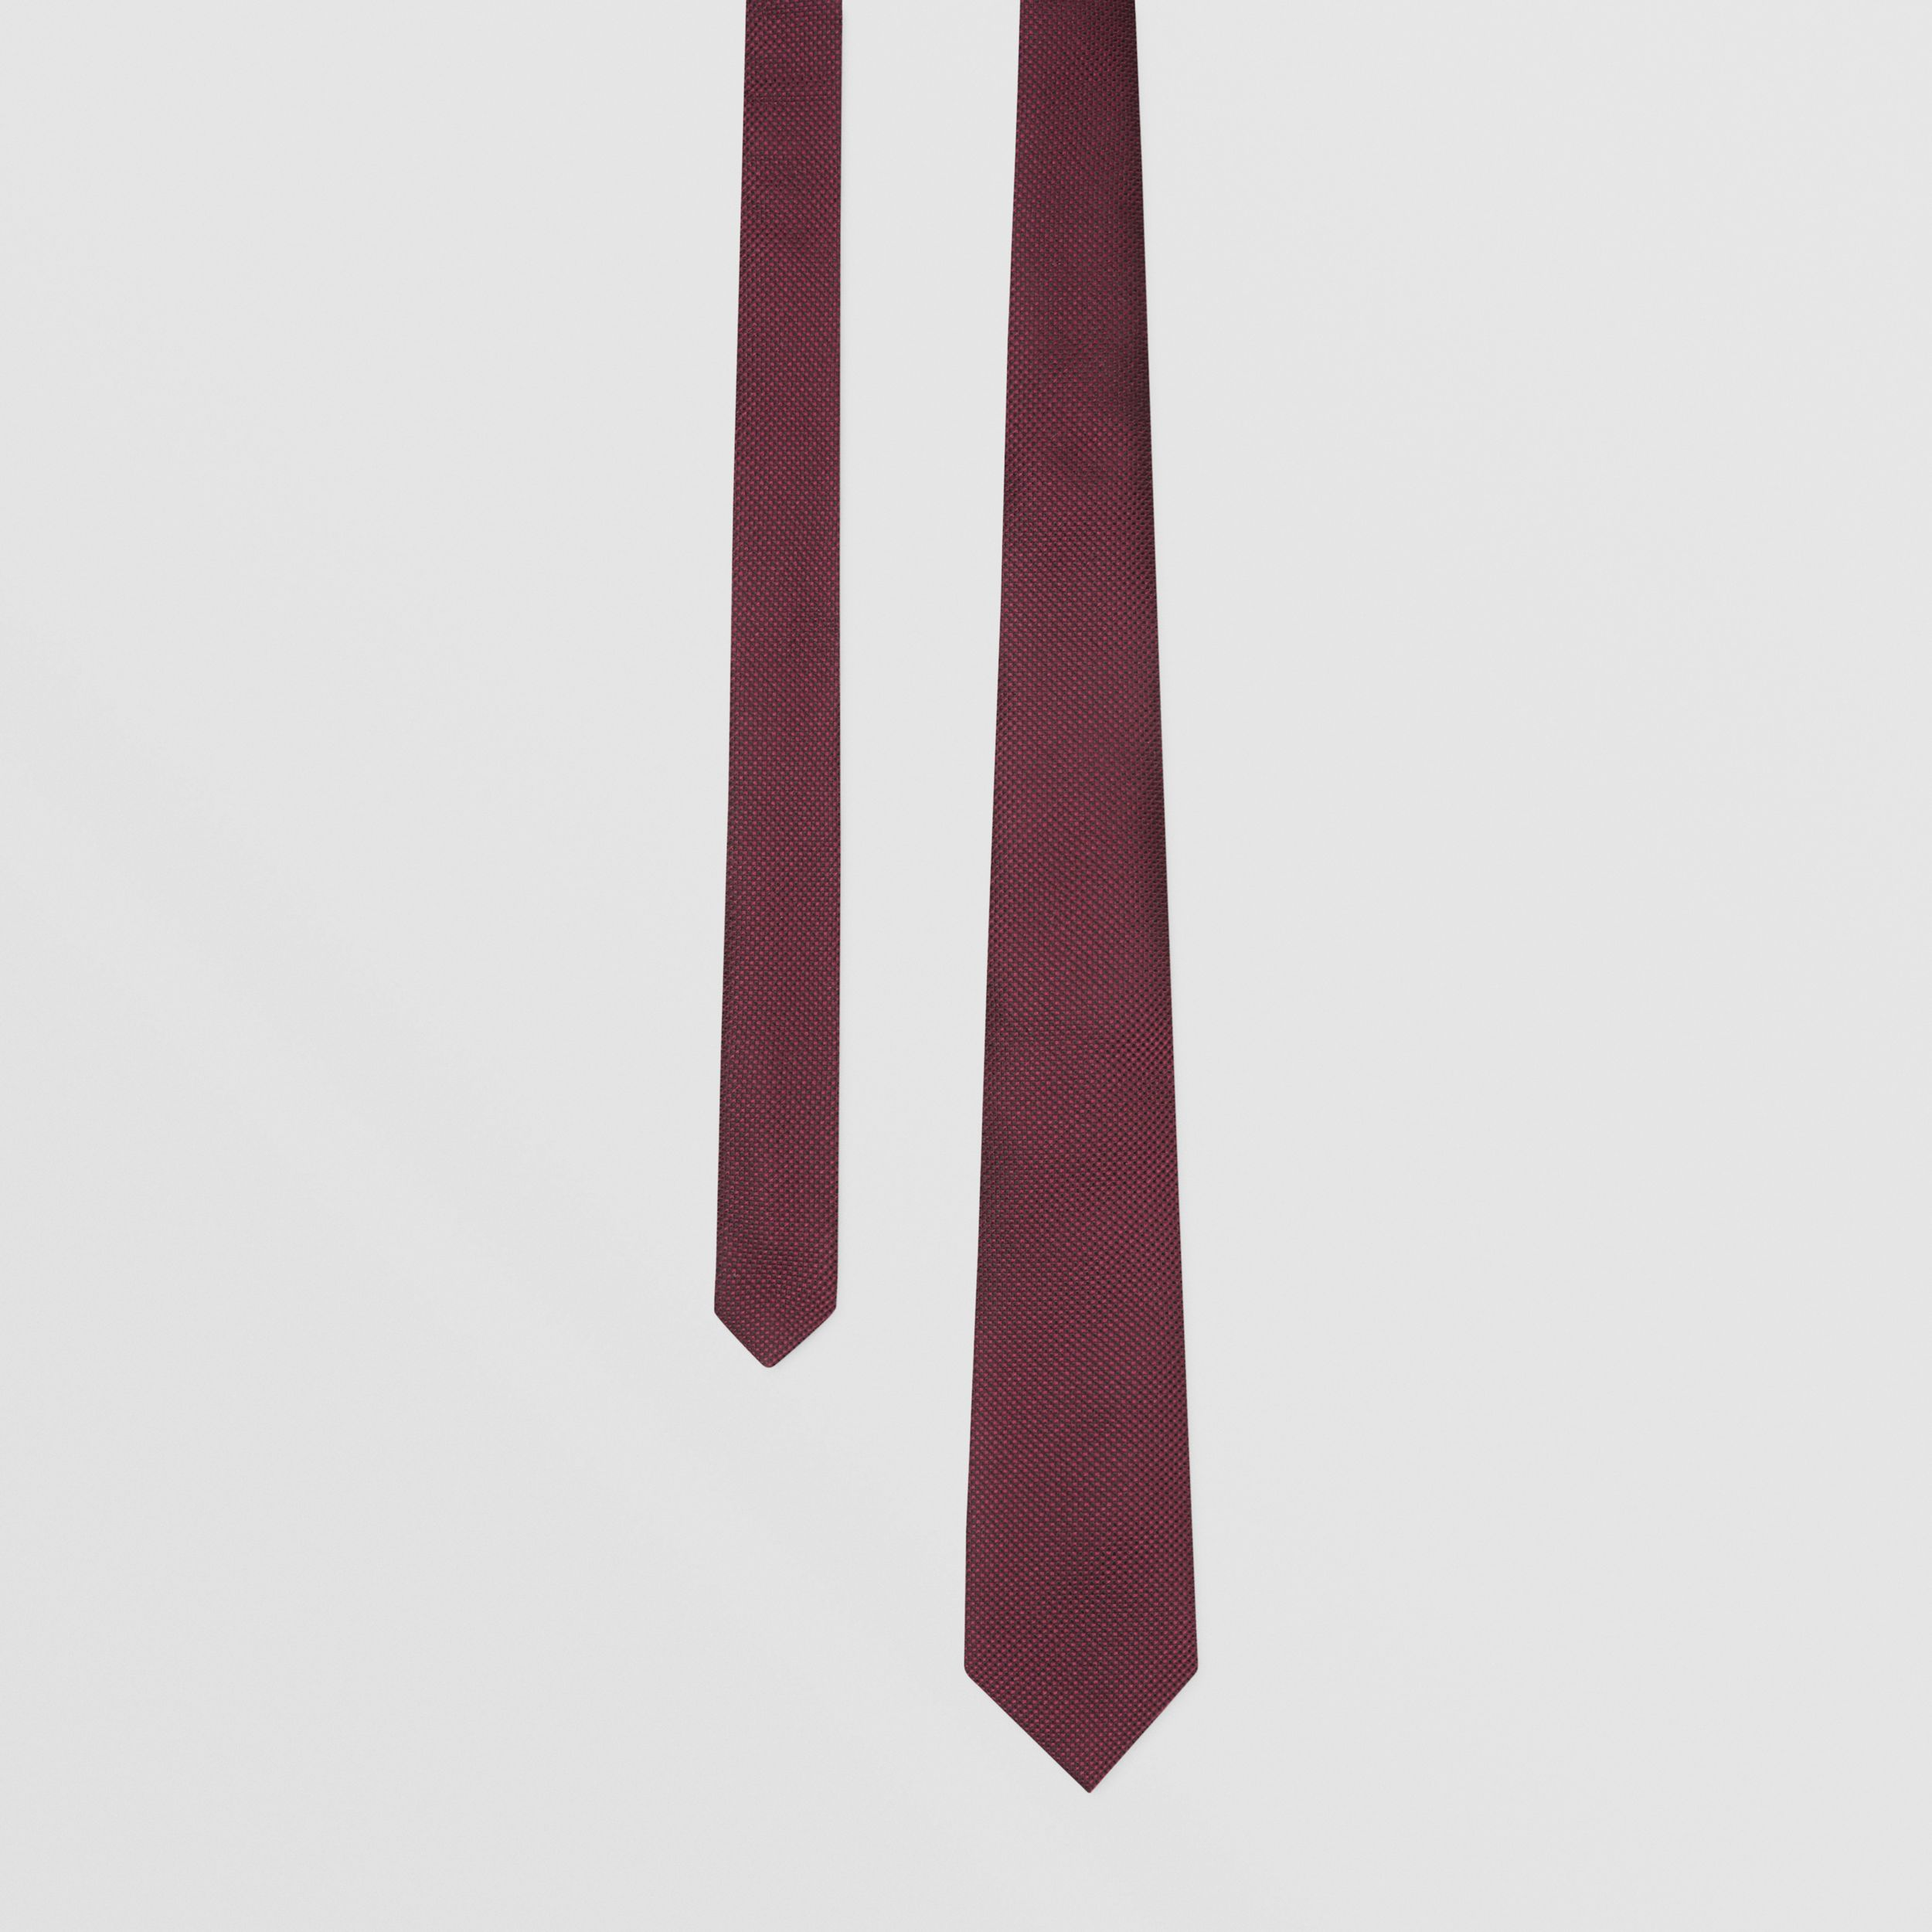 Classic Cut Woven Silk Tie in Dark Plum - Men | Burberry - 1